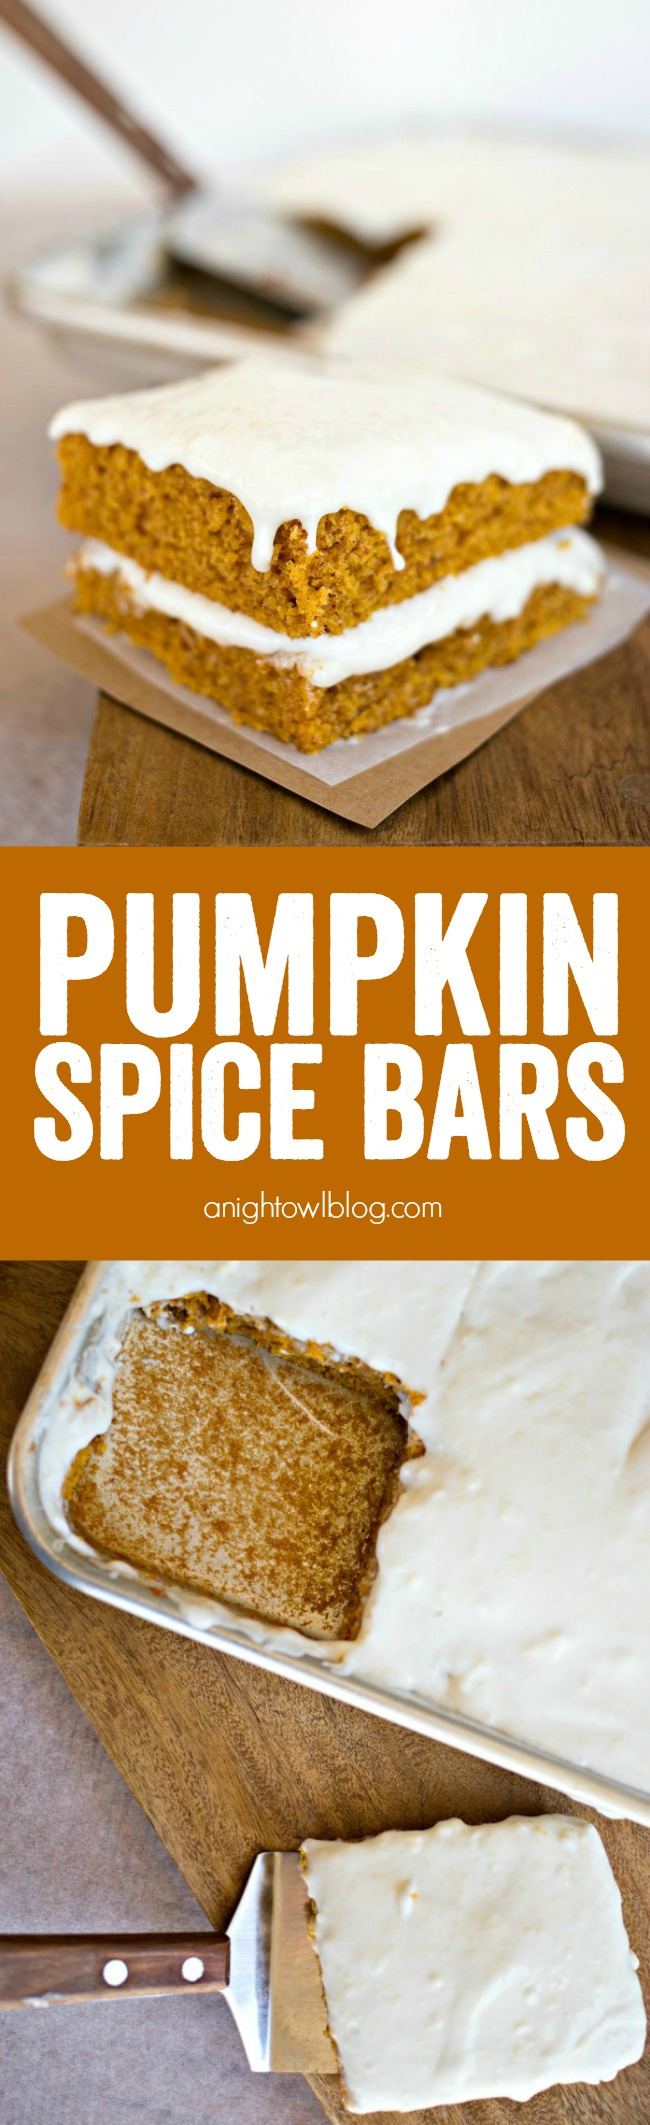 These Pumpkin Spice Bars with cream cheese frosting are moist, delicious and packed full of flavor!